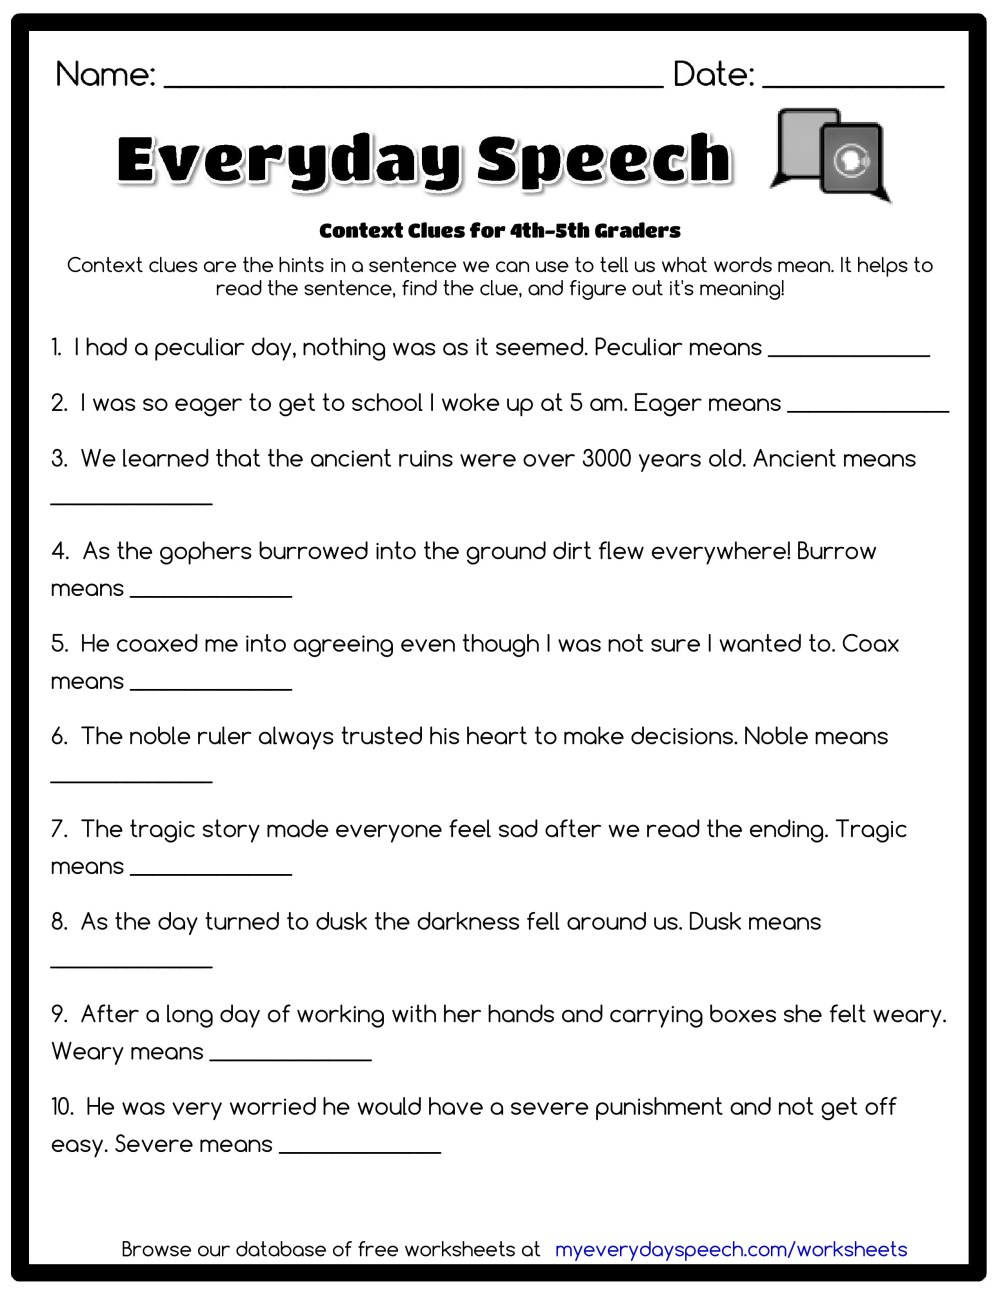 medium resolution of Word Mystery Context Clues Worksheet   Printable Worksheets and Activities  for Teachers